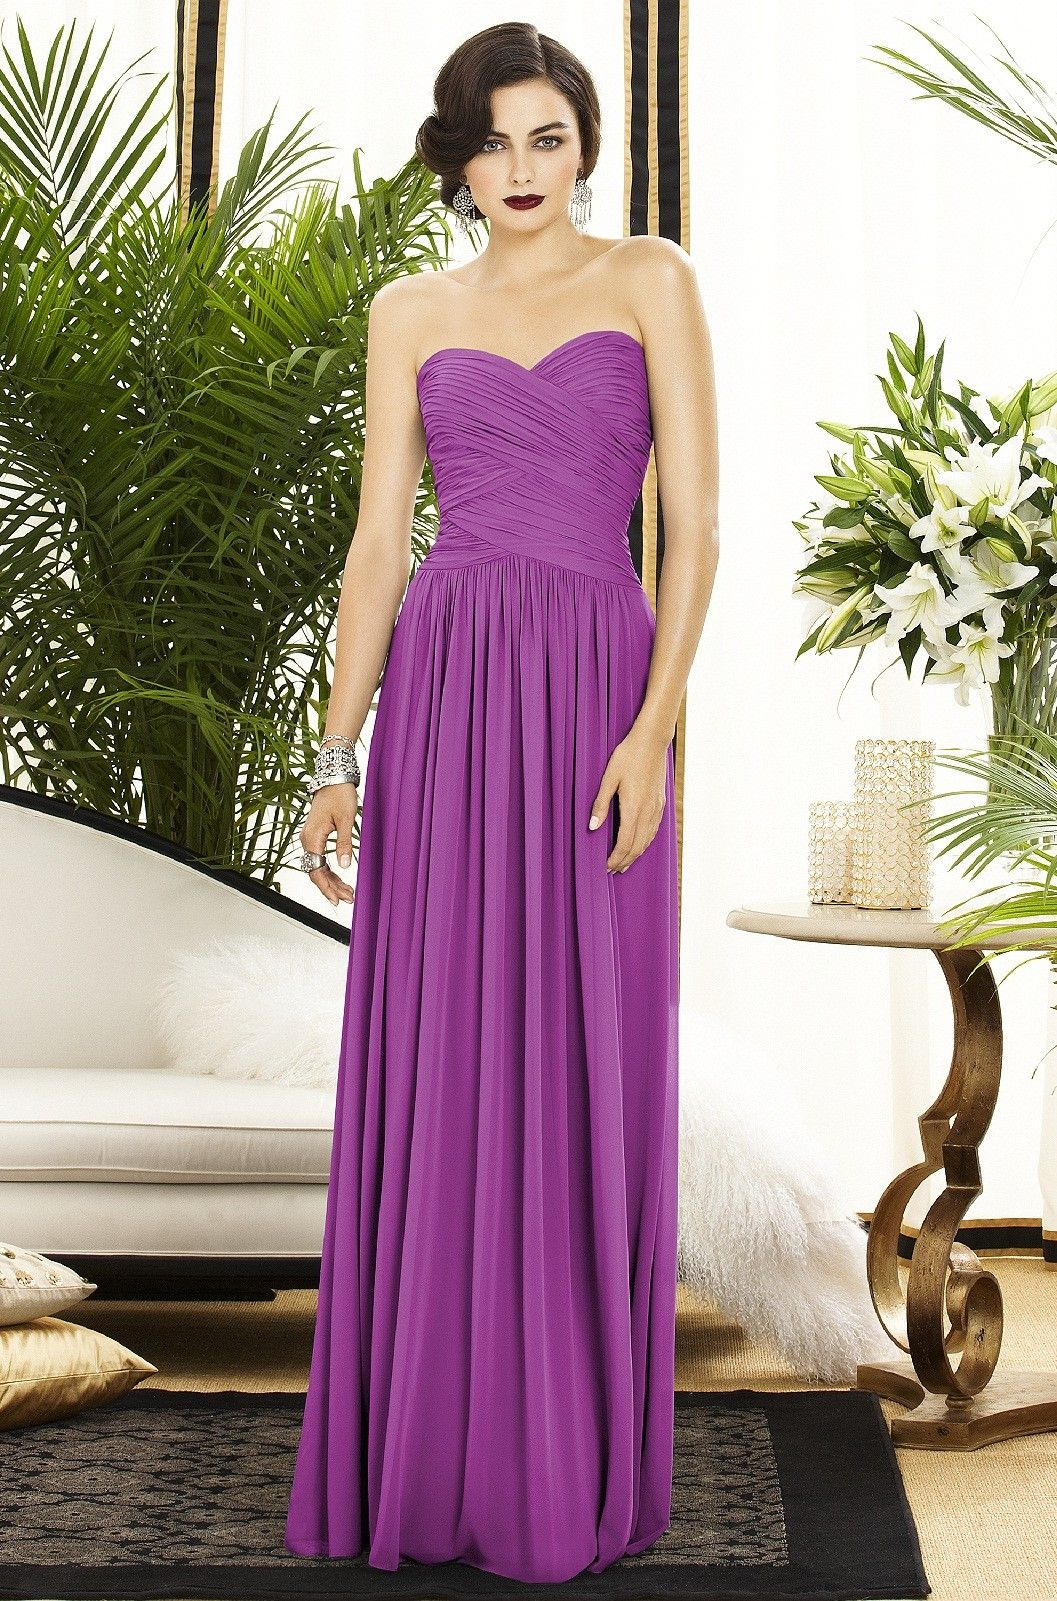 1000+ images about bridesmaid dresses on Pinterest | Colors, Long ...